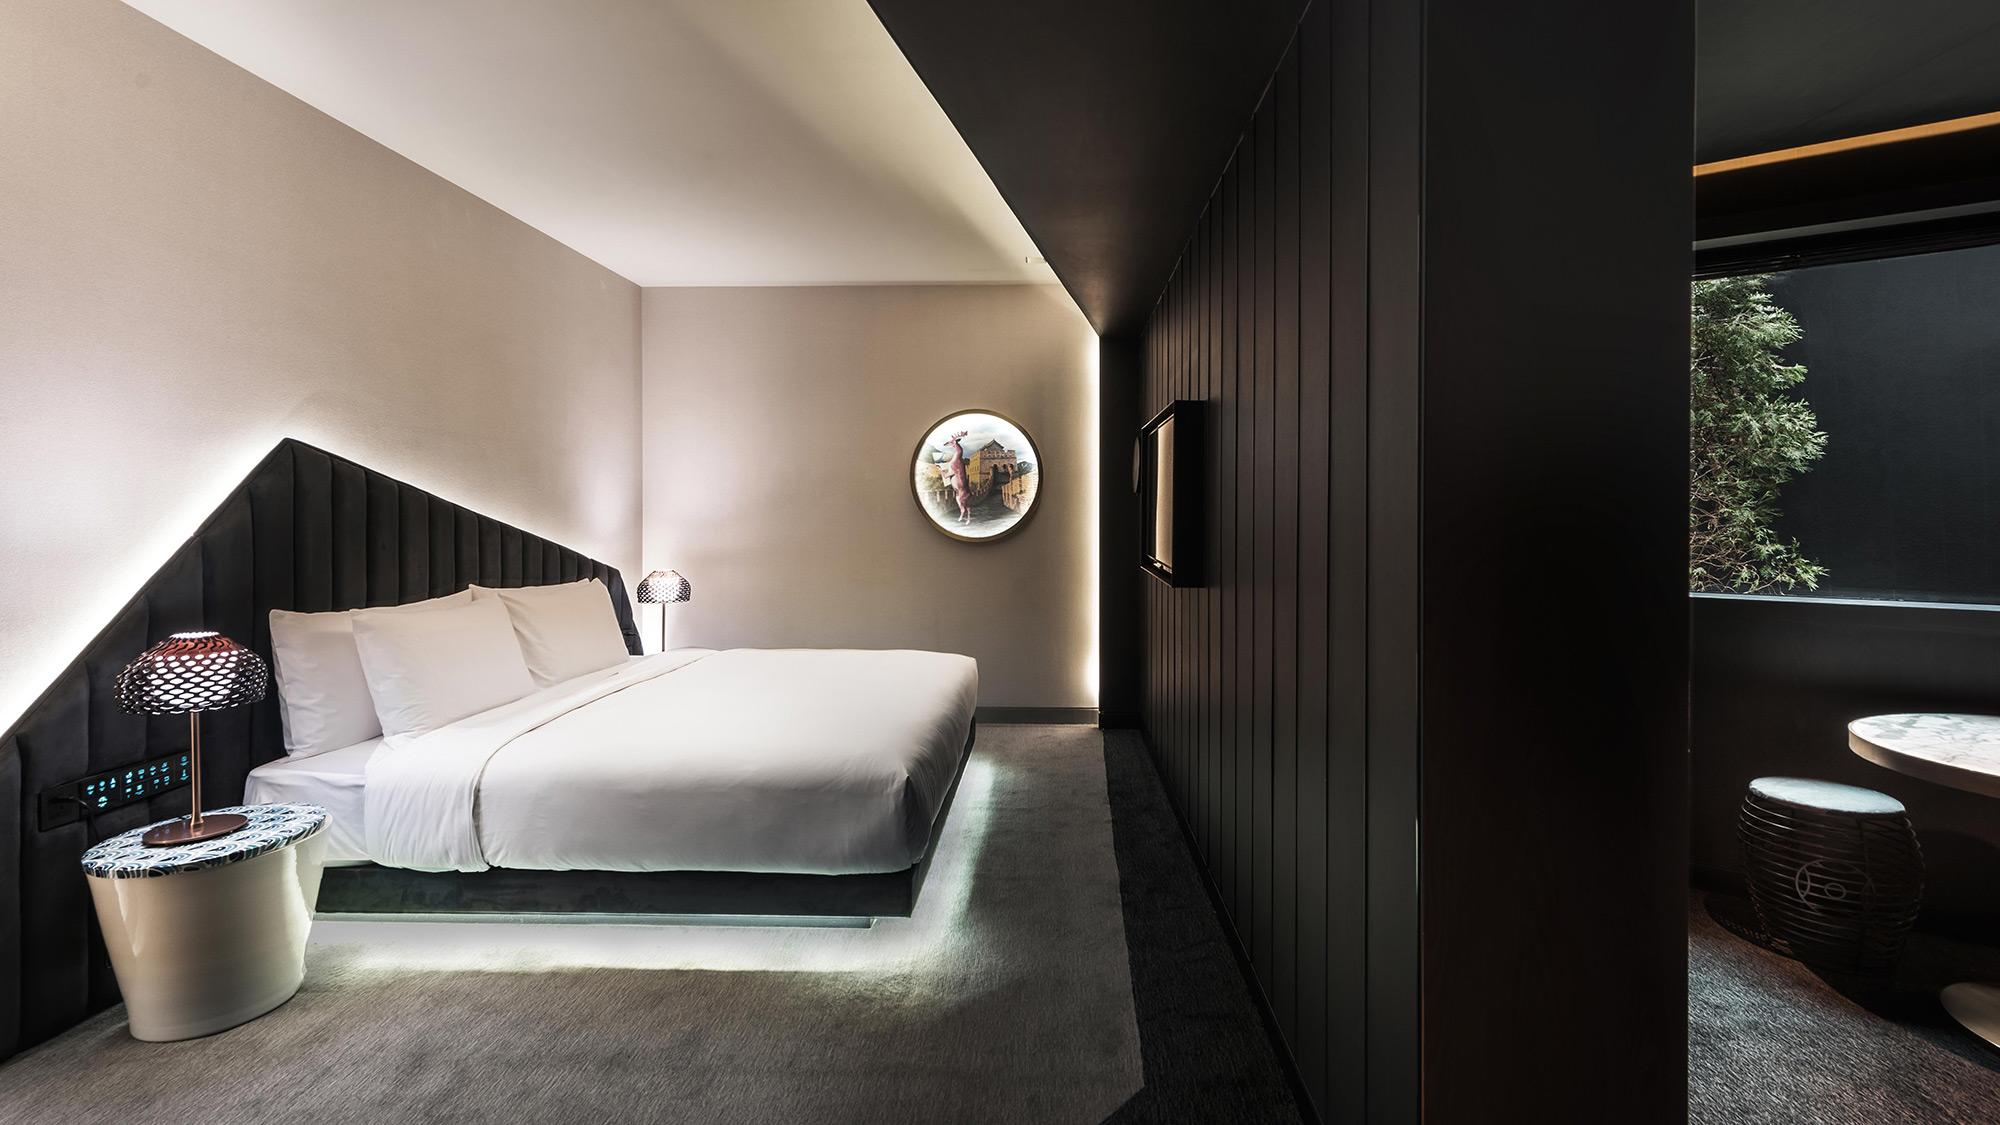 Beijing Design Hotels - Beijing boasts a parade of trendy, unique and thoughtfully luxurious hotels, at prices far cheaper than cities like New York, Paris and London.